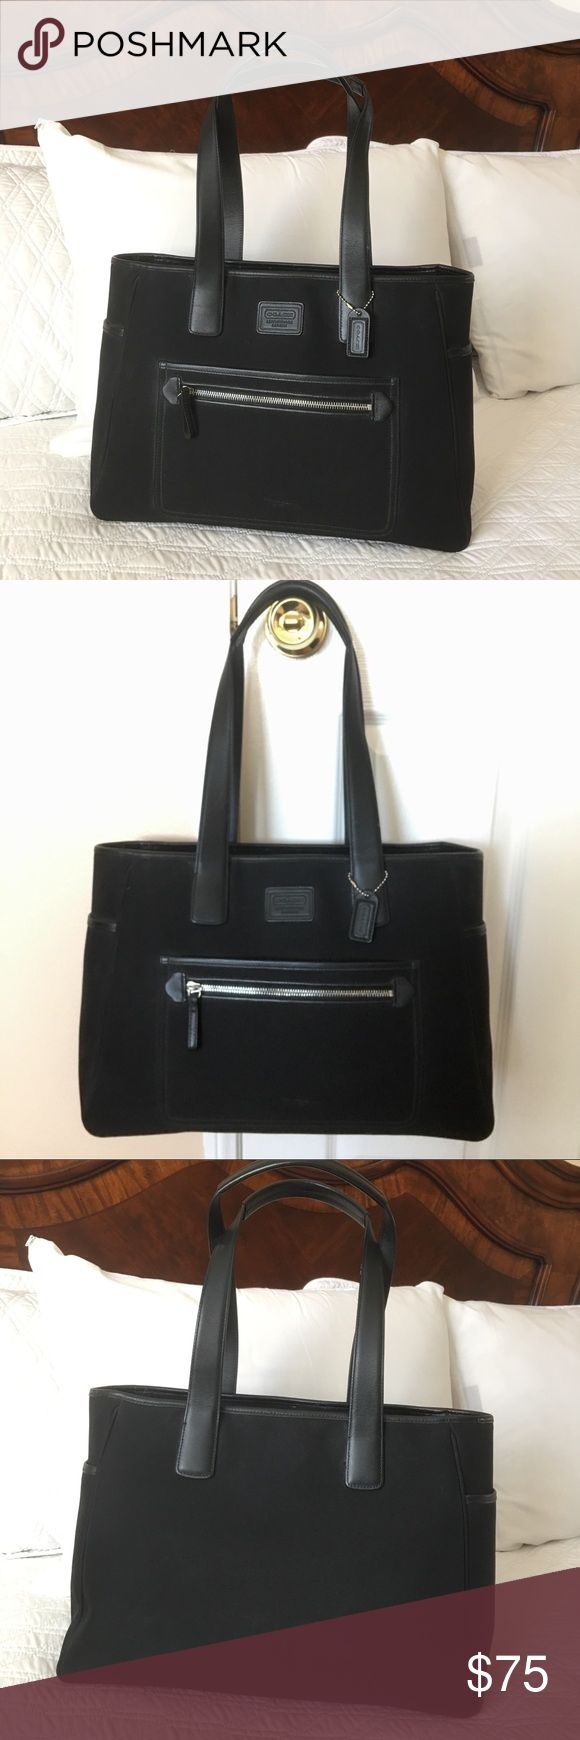 "Authentic Coach Large Handbag Authentic! Beautiful black handbag from Coach 💕 Lightweight and very spacious! Approximately (not exact) 15 1/2"" x 11"" x 6"" Strap drop is about 10 1/2"" Zipper top closure w/ pockets inside. Used (marks/scratches) and in good condition NO TRADE ❌ FINAL PRICE, NO DISCOUNT ❌ Coach Bags"